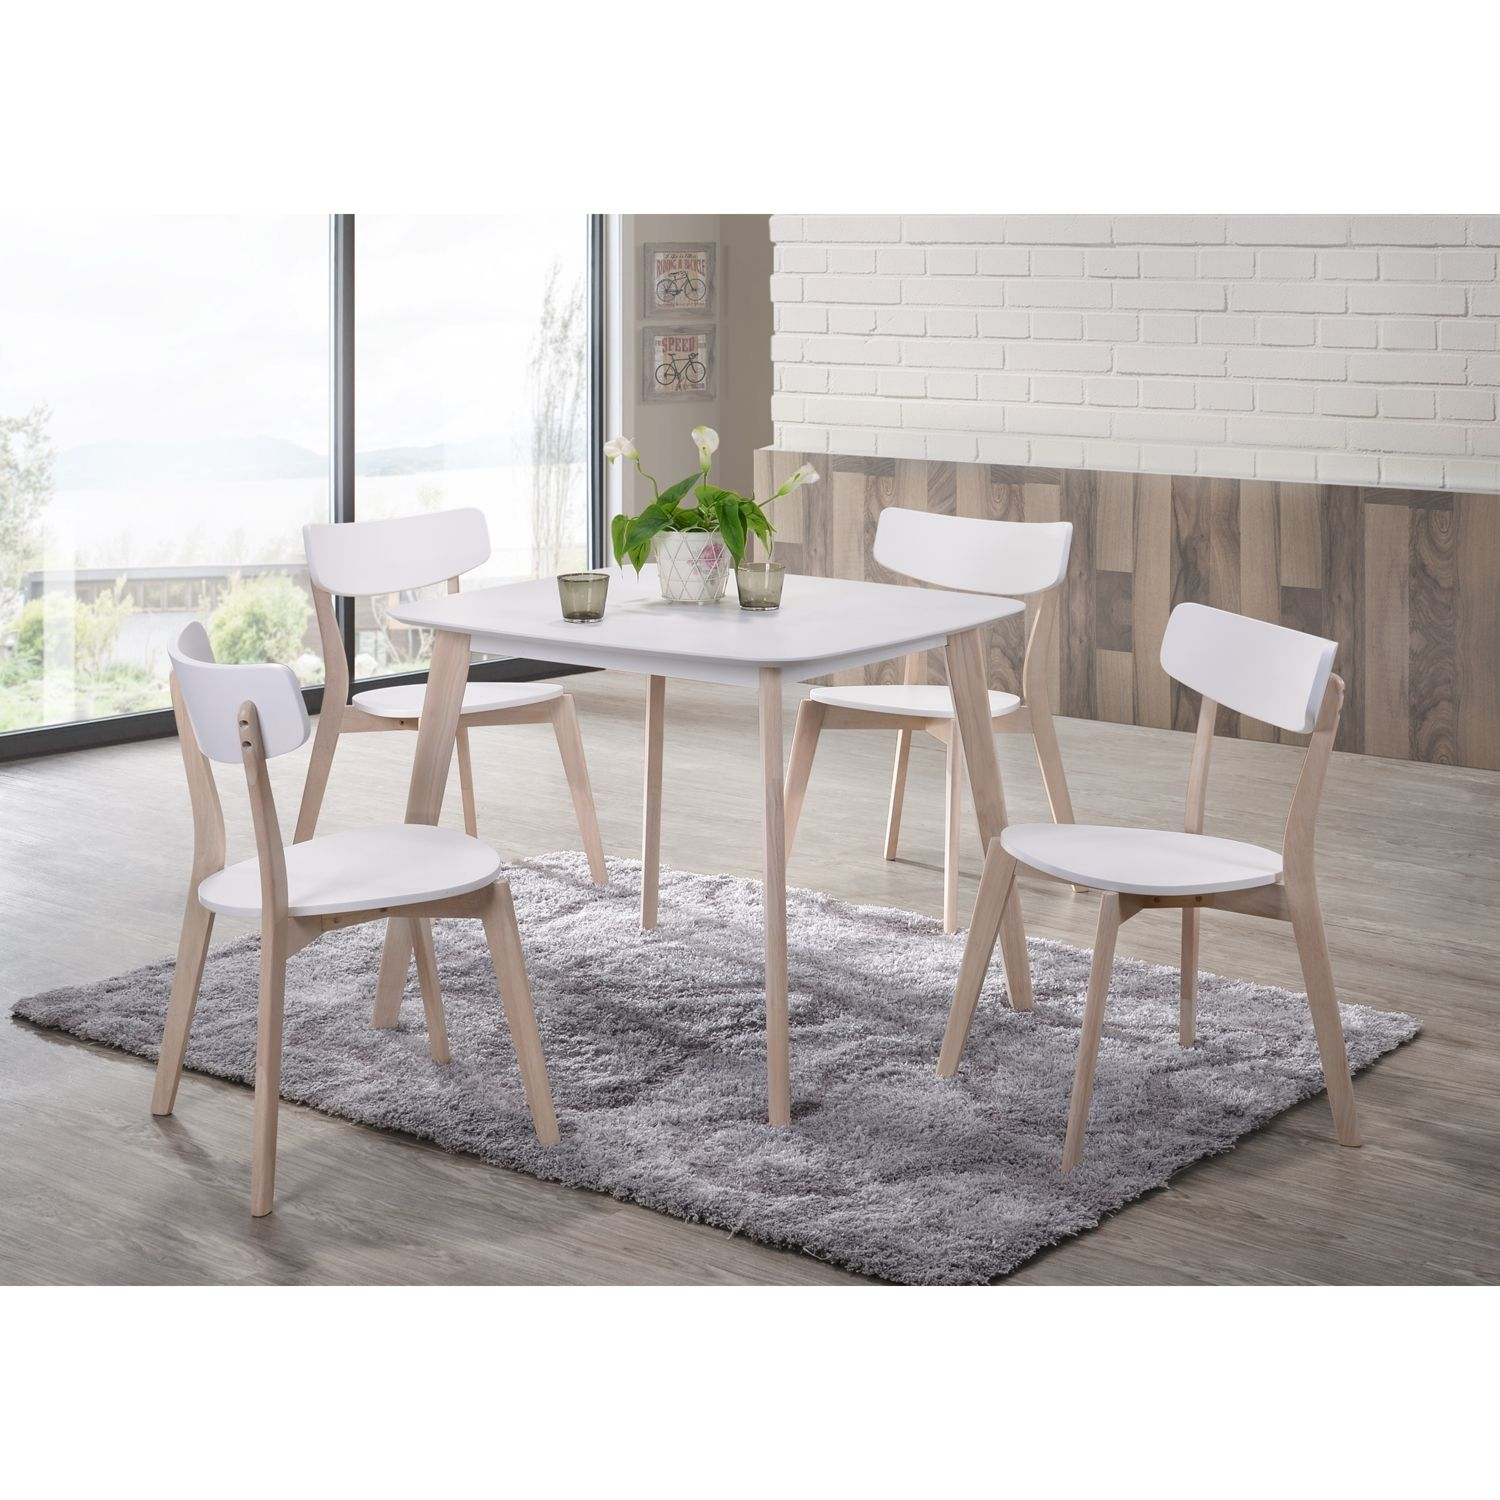 Mika Dining Table And Four Chairs Set Dining Table 4 Seater Dining Table Table And Chair Sets